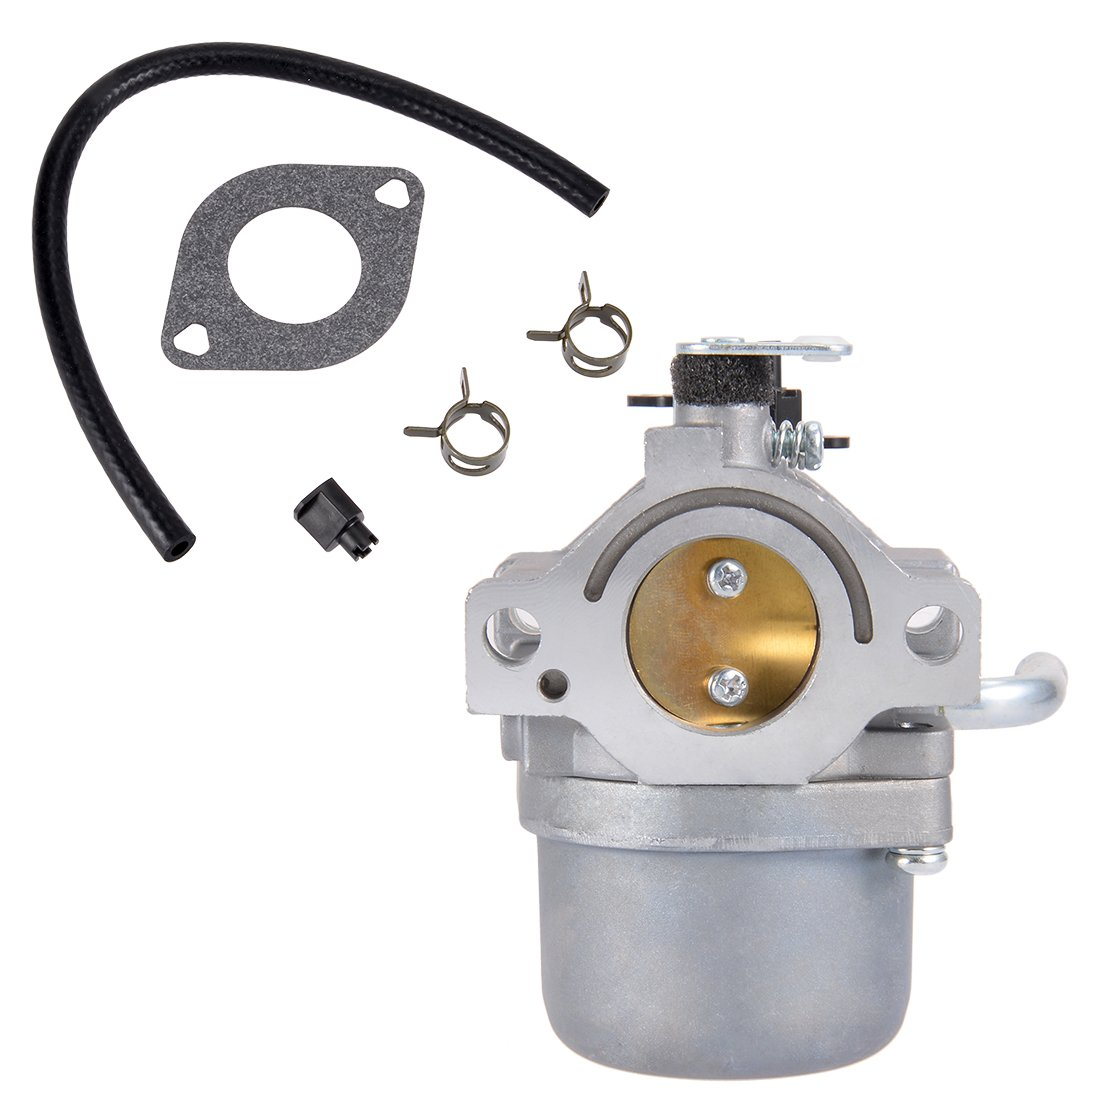 uxcell 593432 Carburetor Carb for Briggs & Stratton 794653 791266 Engine with Gasket Fuel Line